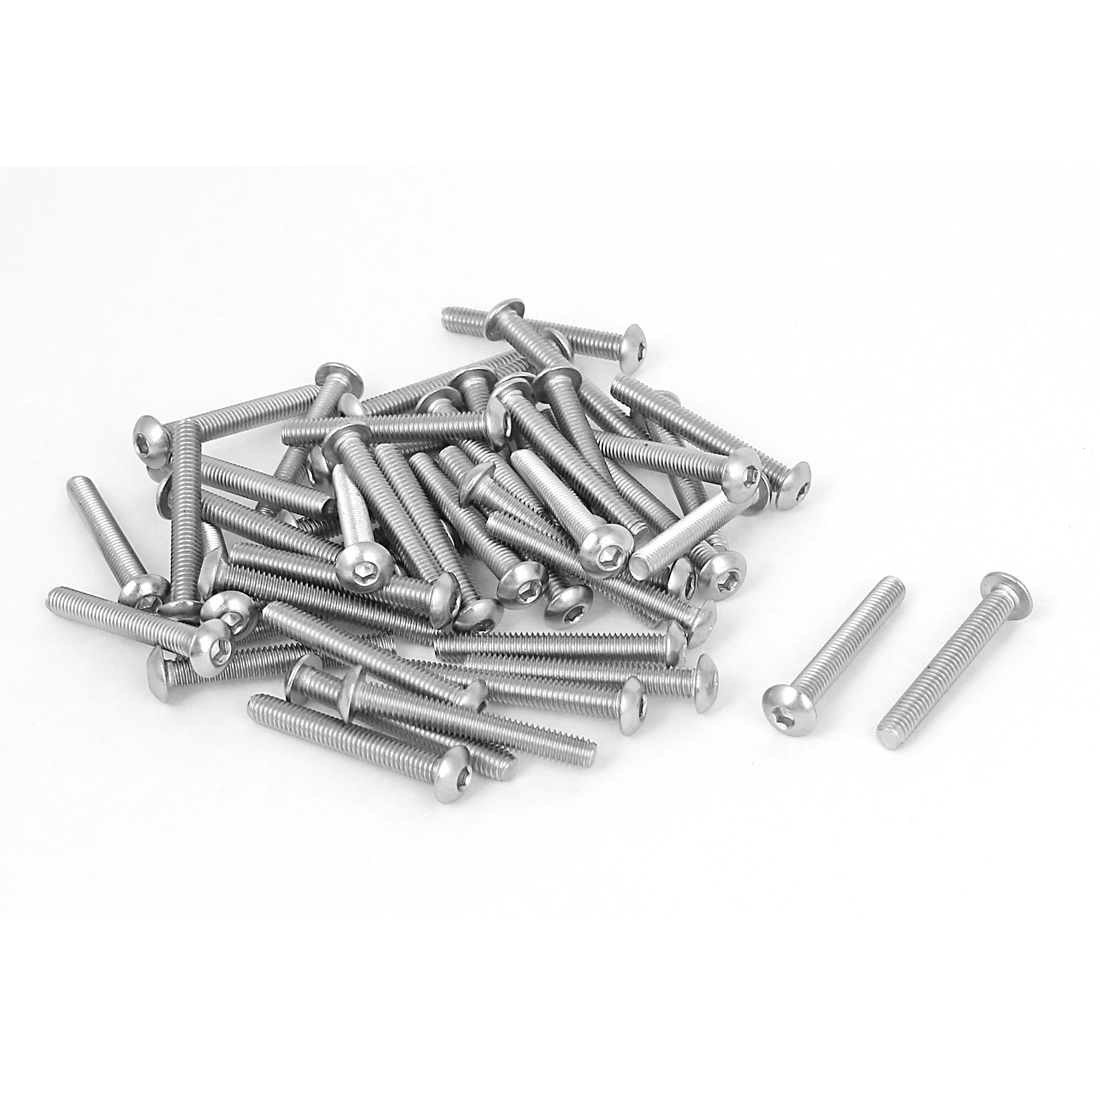 50 Pcs 0.7mm Pitch 2.5mm Stainless Steel Hex Socket Button Head Screws M4x30mm